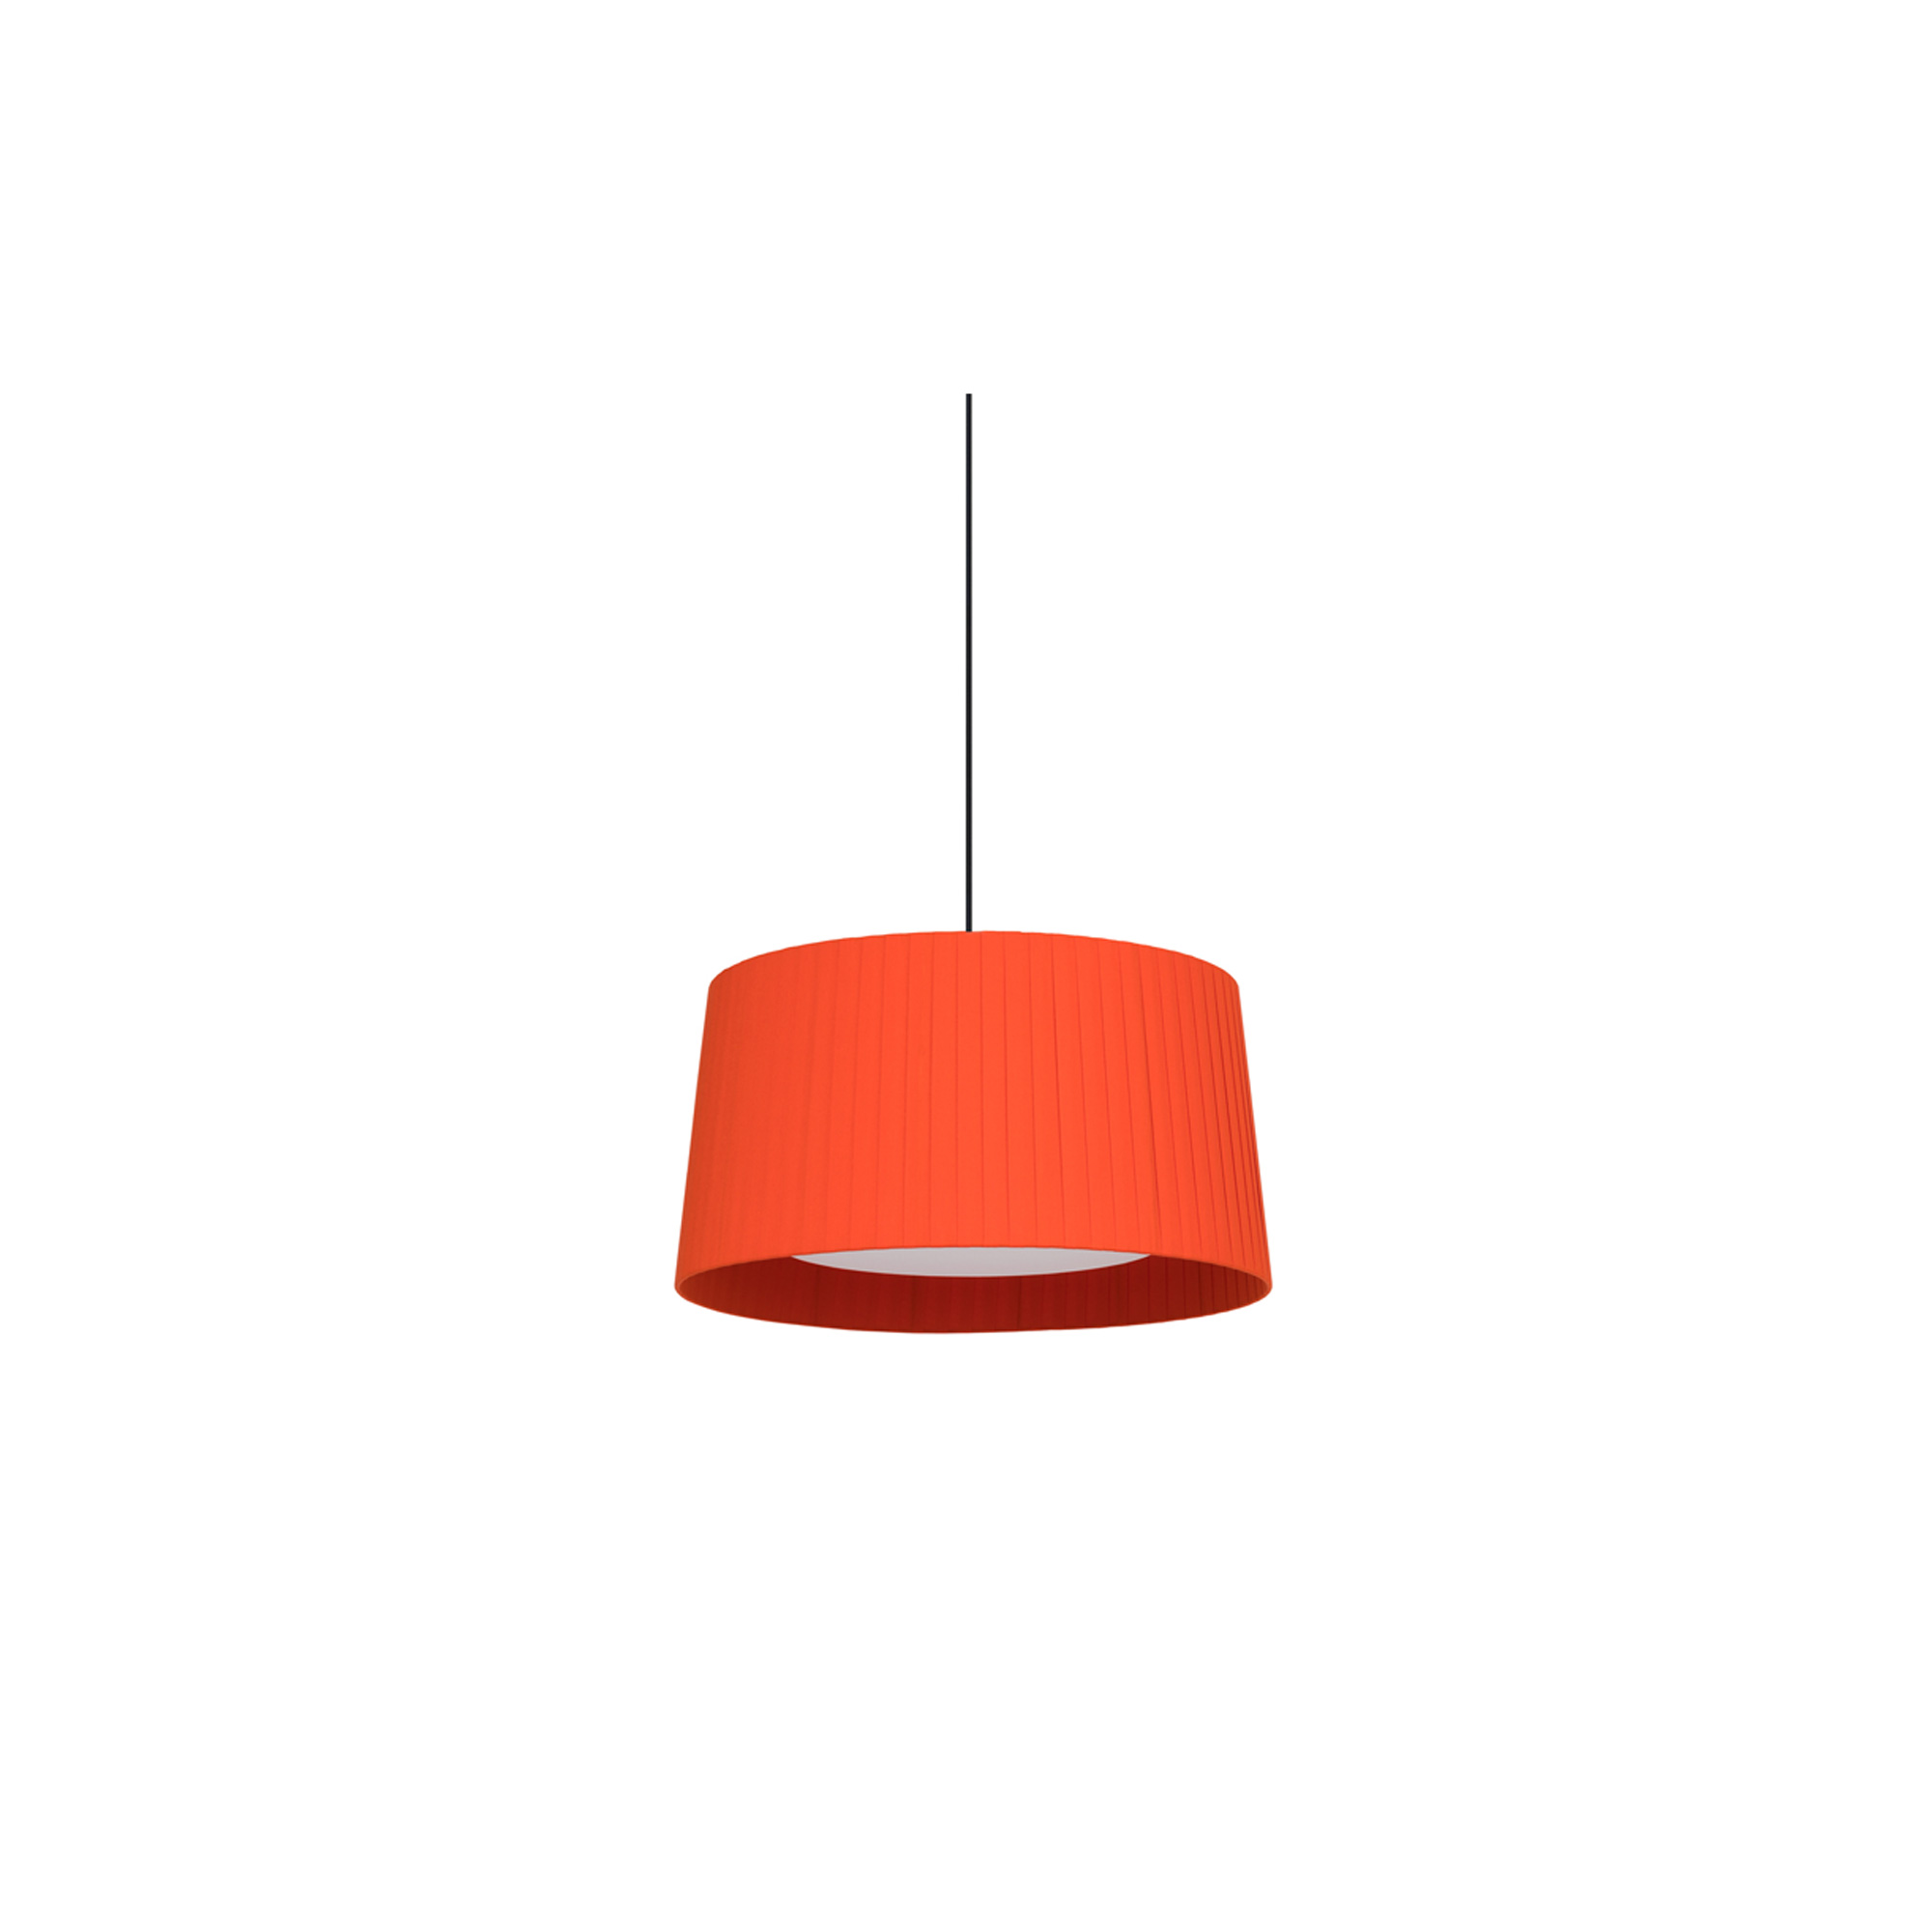 GT5 Pendant Lamp - The GT5 and GT6 are ideal for average-size spaces or domestic use. The pendant lamps feature beautiful ribbon shades that add elegance and a touch of colour to a neutral room. This is a colourful family that varies in size without altering its essence, creating rich luminous tones. With the light on, the shade provides a warm light, rich in nuances. Light source is not included, it is available to purchase separately. Please enquire for it. Satin nickel and textured black finish are not available with white cable.  | Matter of Stuff